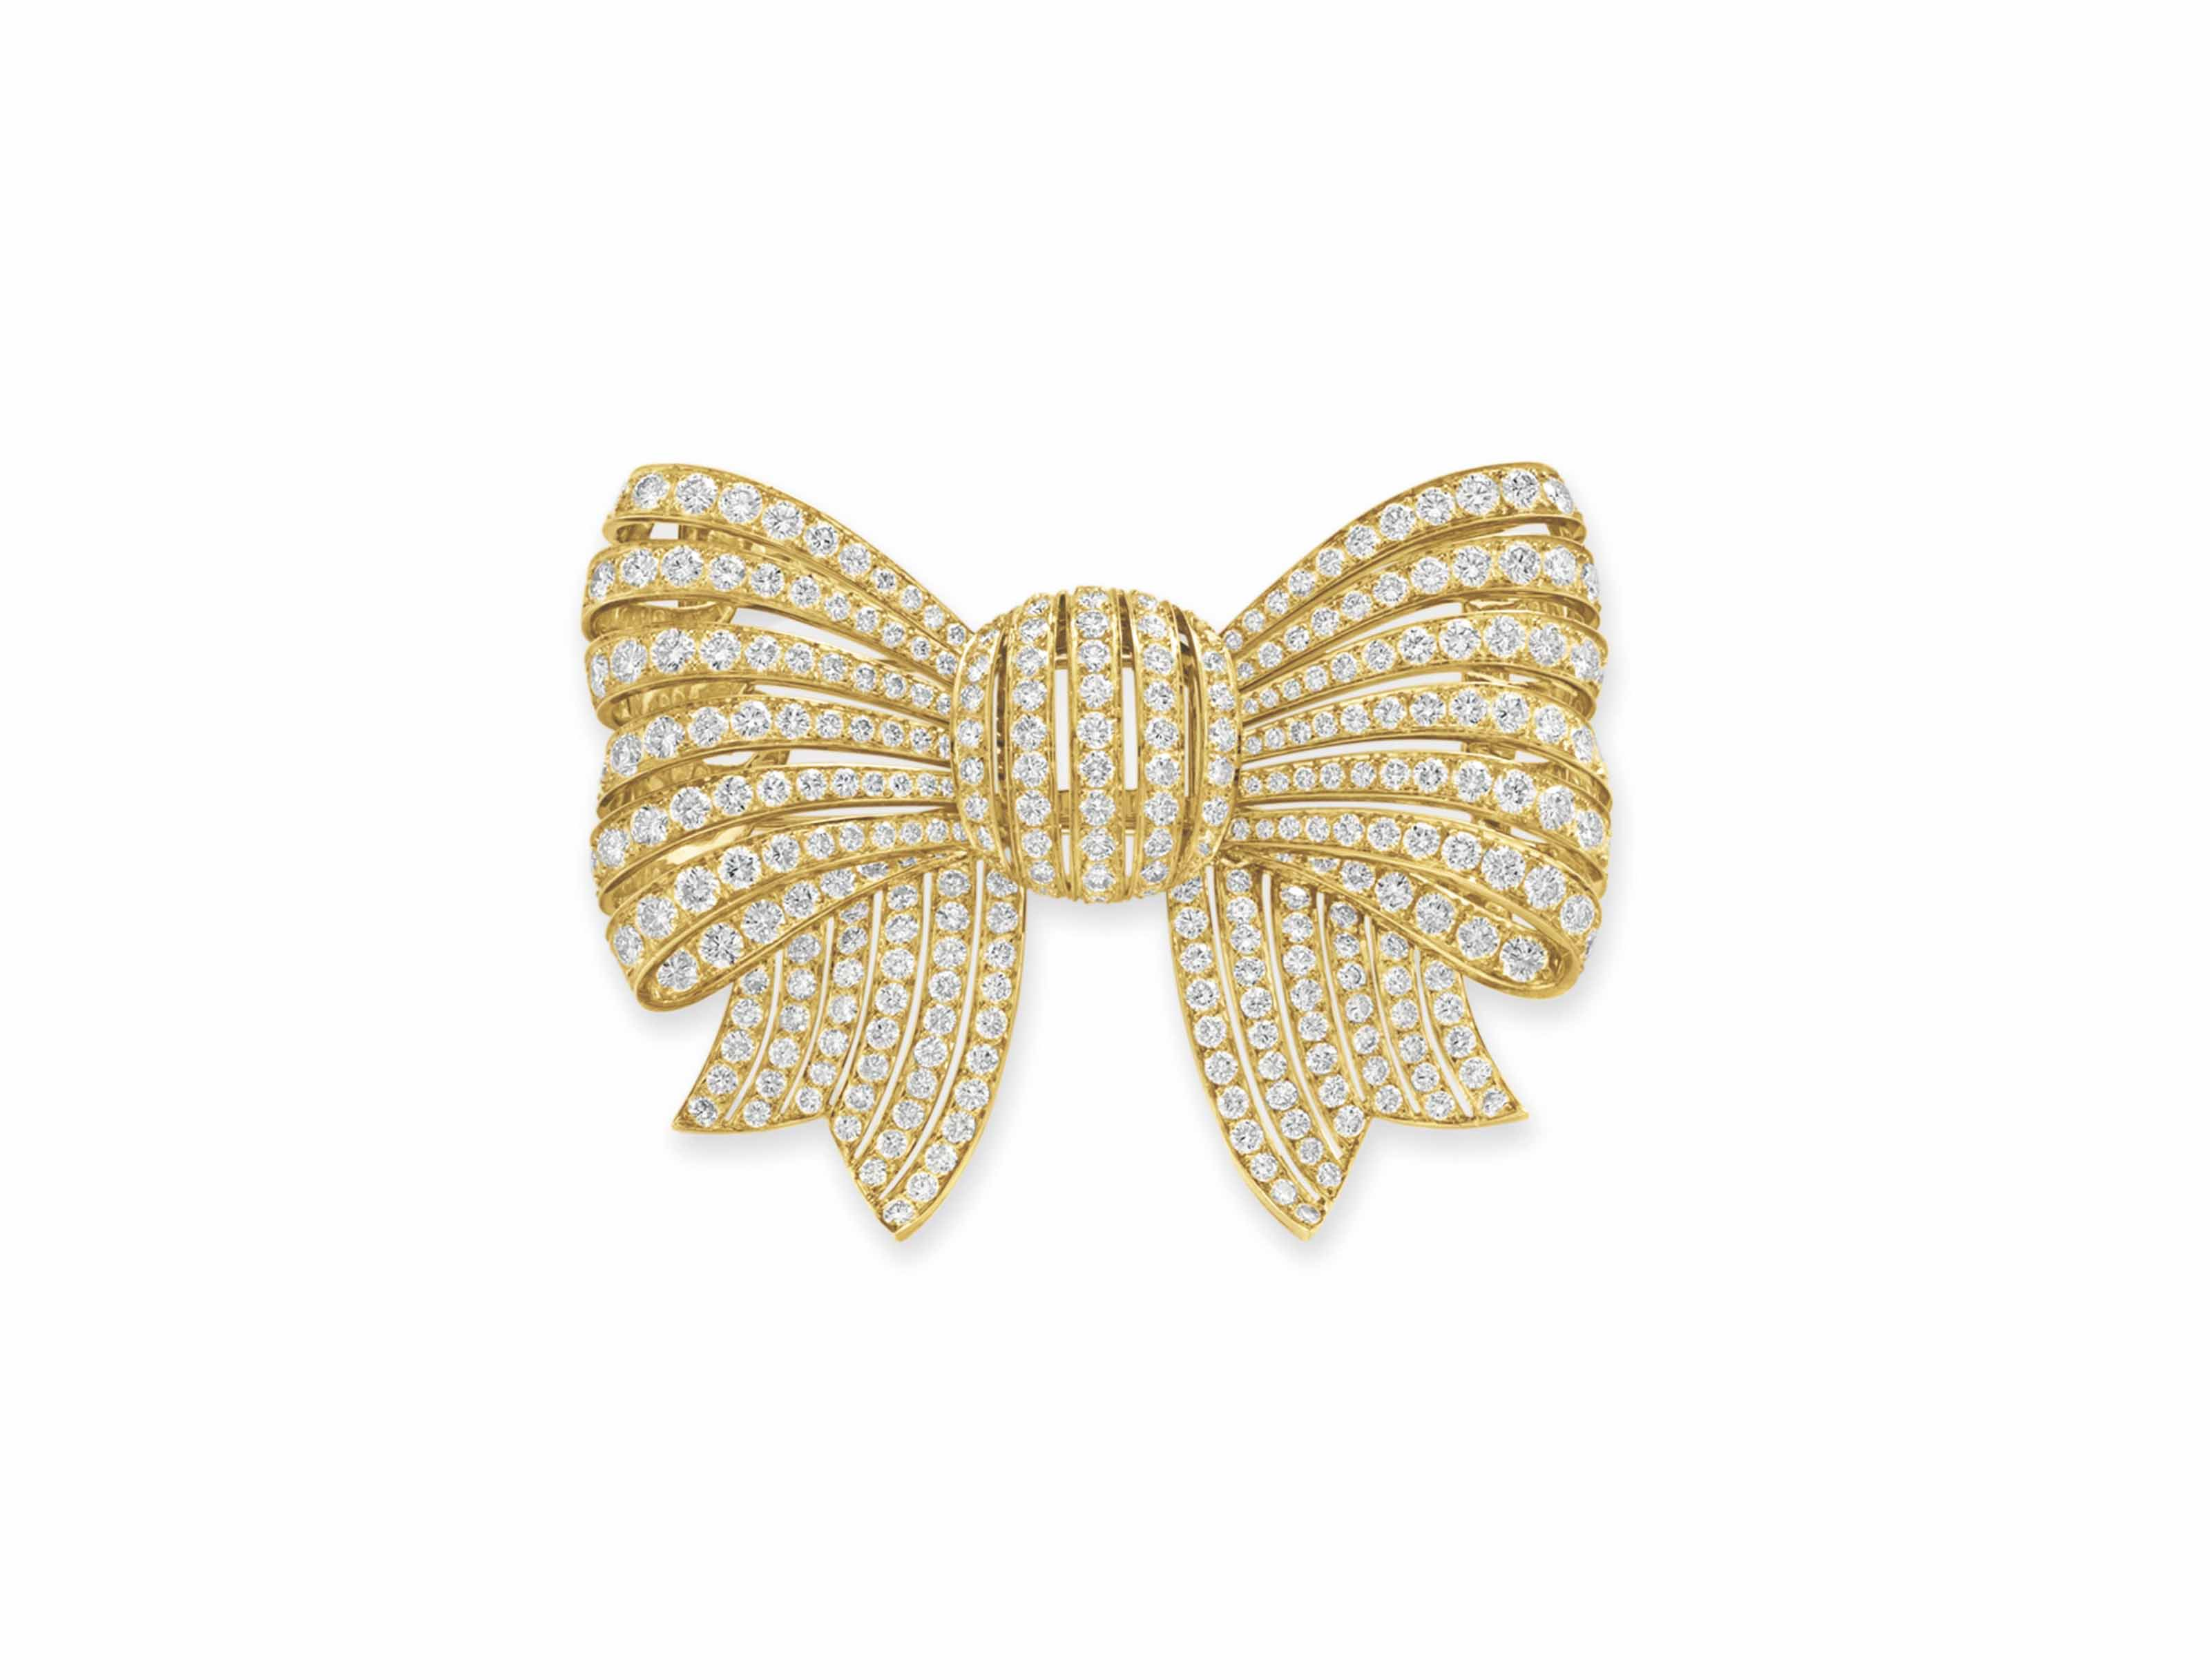 A DIAMOND AND GOLD BOW BROOCH,